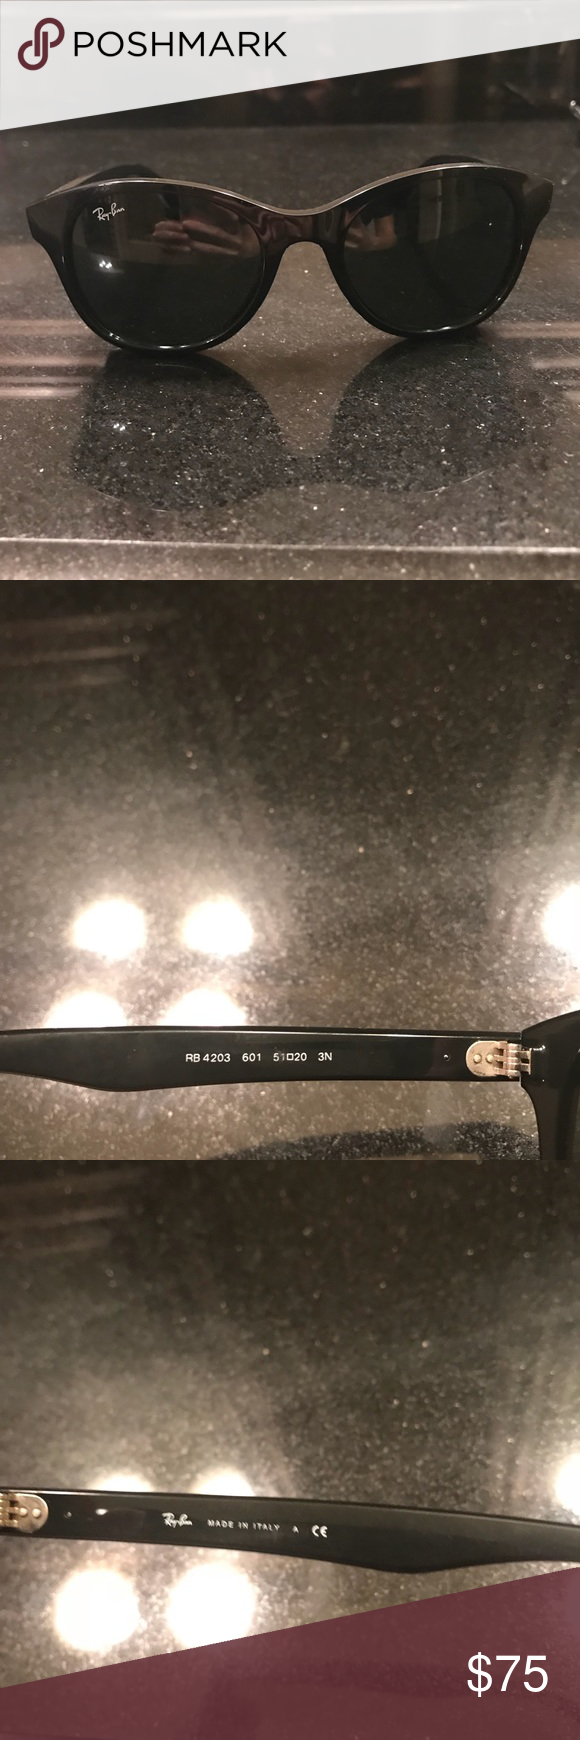 Ray ban sunglasses Black classic rayban sunglasses. Comes with black ray ban leather case. Worn a few times like new. Awesome pair of classic ray bans. Purchased at off 5th Avenue saks. Ray-Ban Accessories Sunglasses